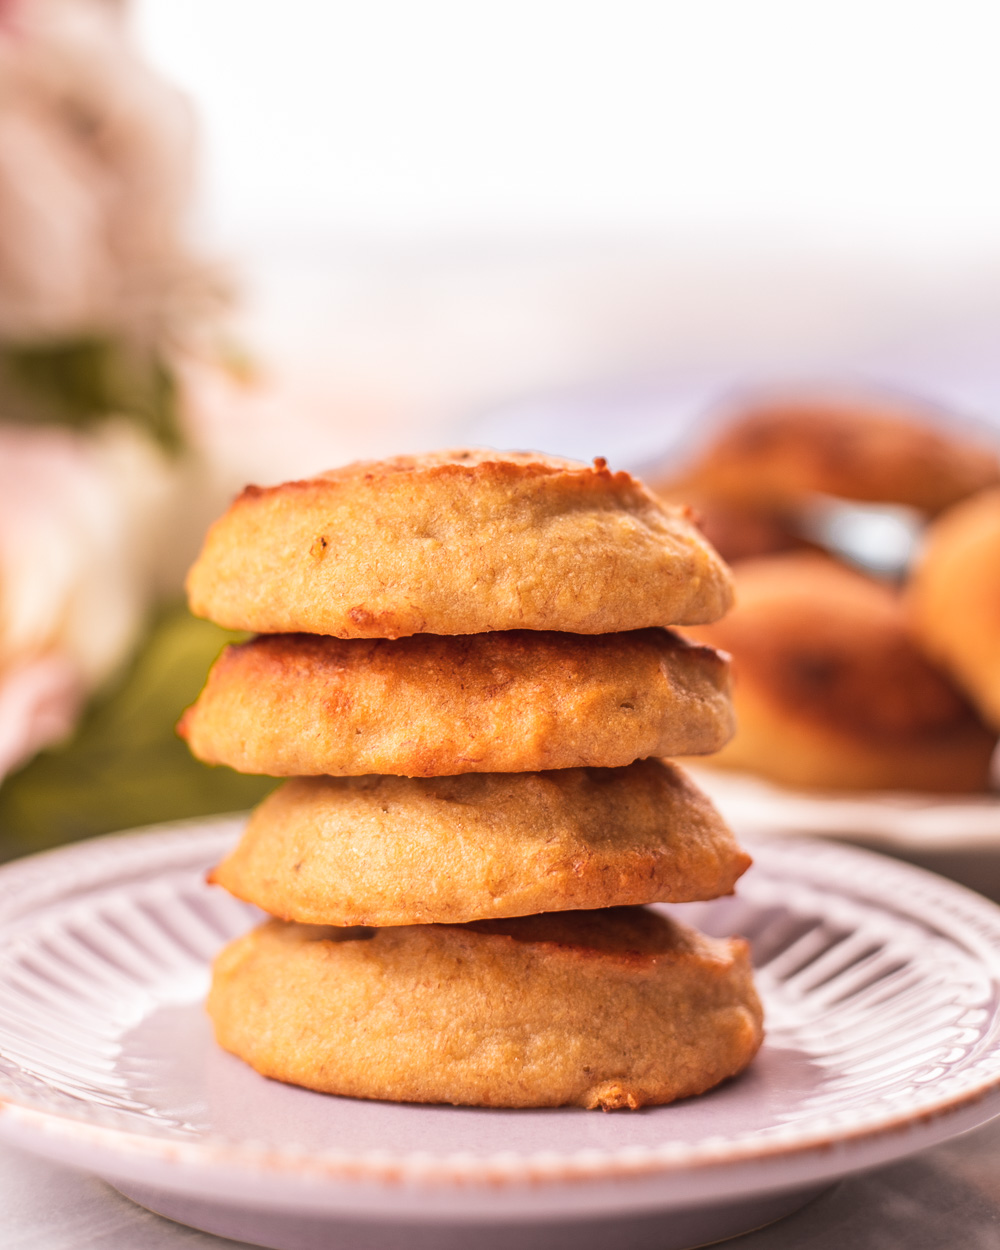 Making, Enjoying and Sharing the Healthy Chewy Banana Cookies that are so easy to make, low-calorie, low-fat and all-natural! Serve them as healthy dessert, snack or breakfast!